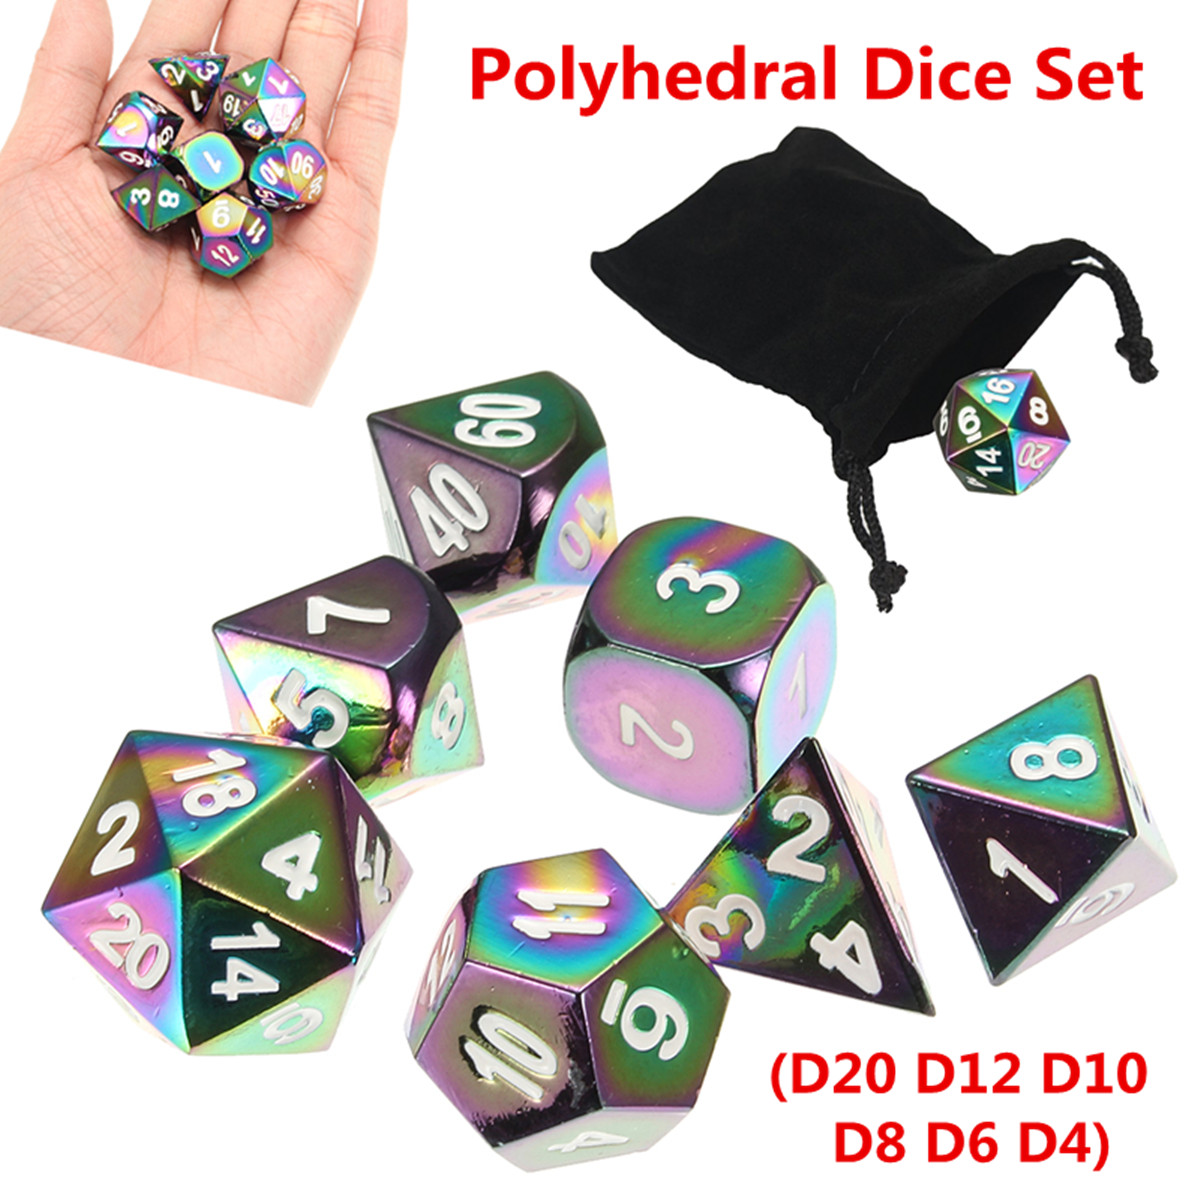 7Pcs Colorful Zinc Alloy Polyhedral Dice Set Board Game Multisided Dices Gadget